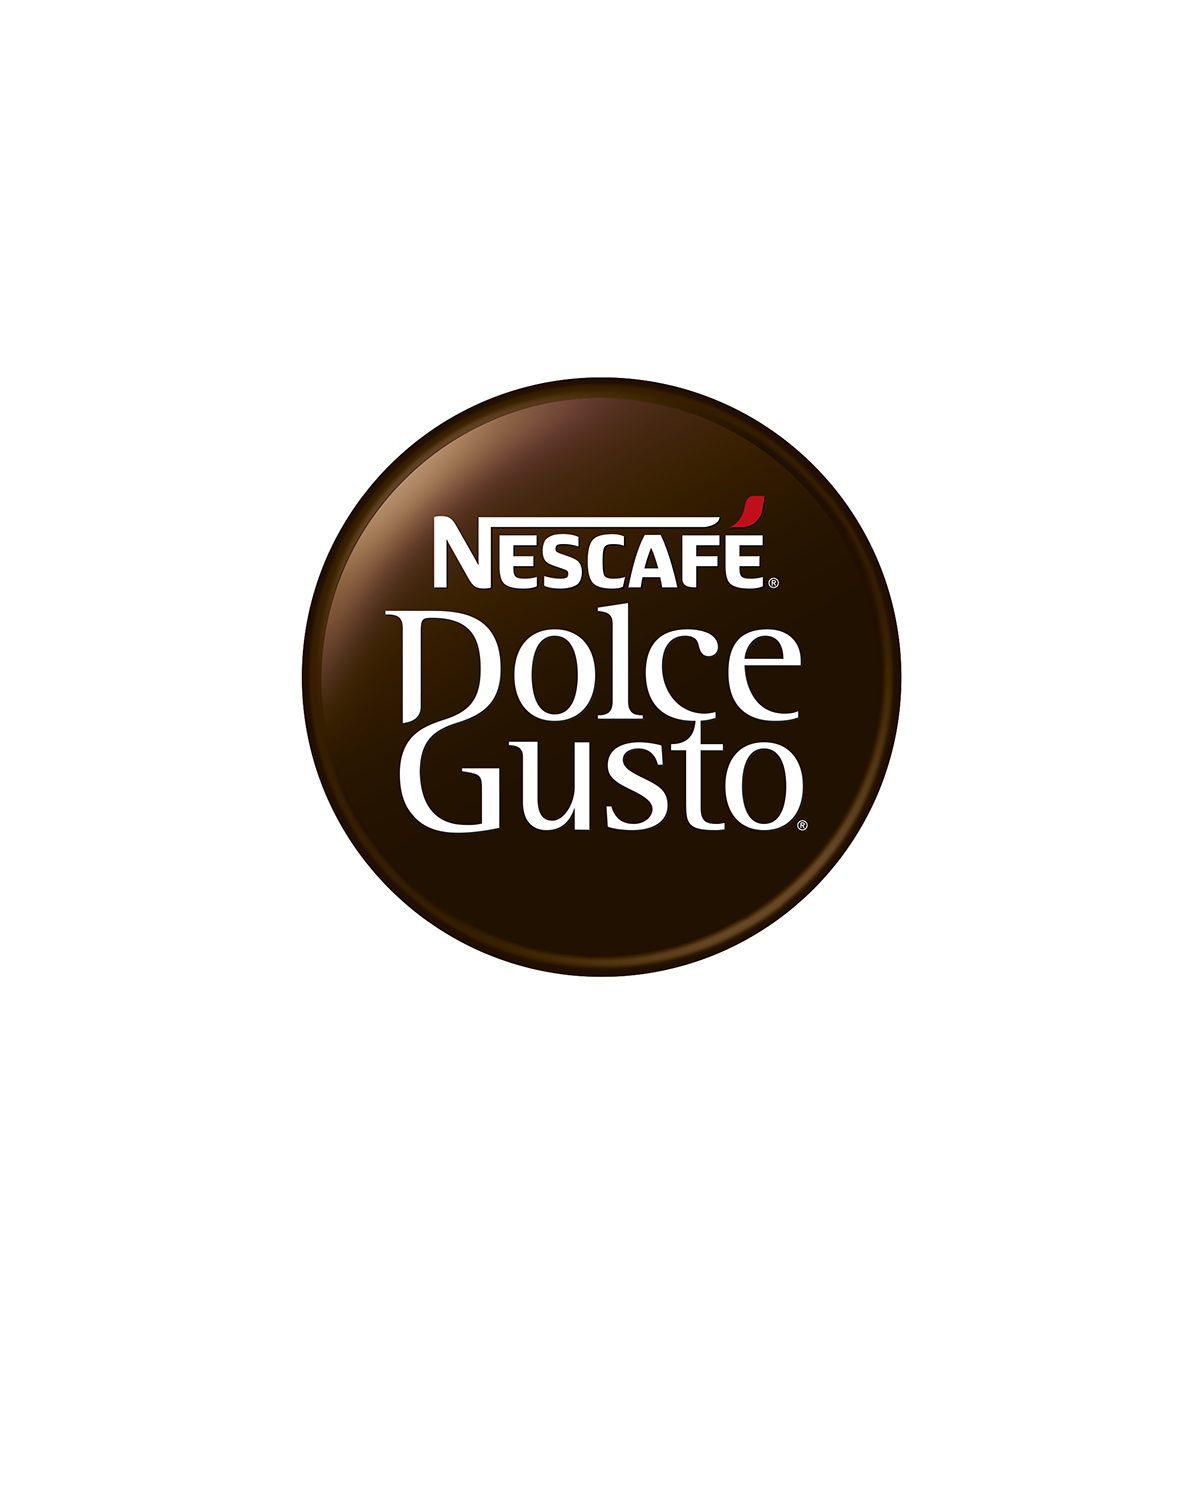 Nescafé Dolce Gusto packaging